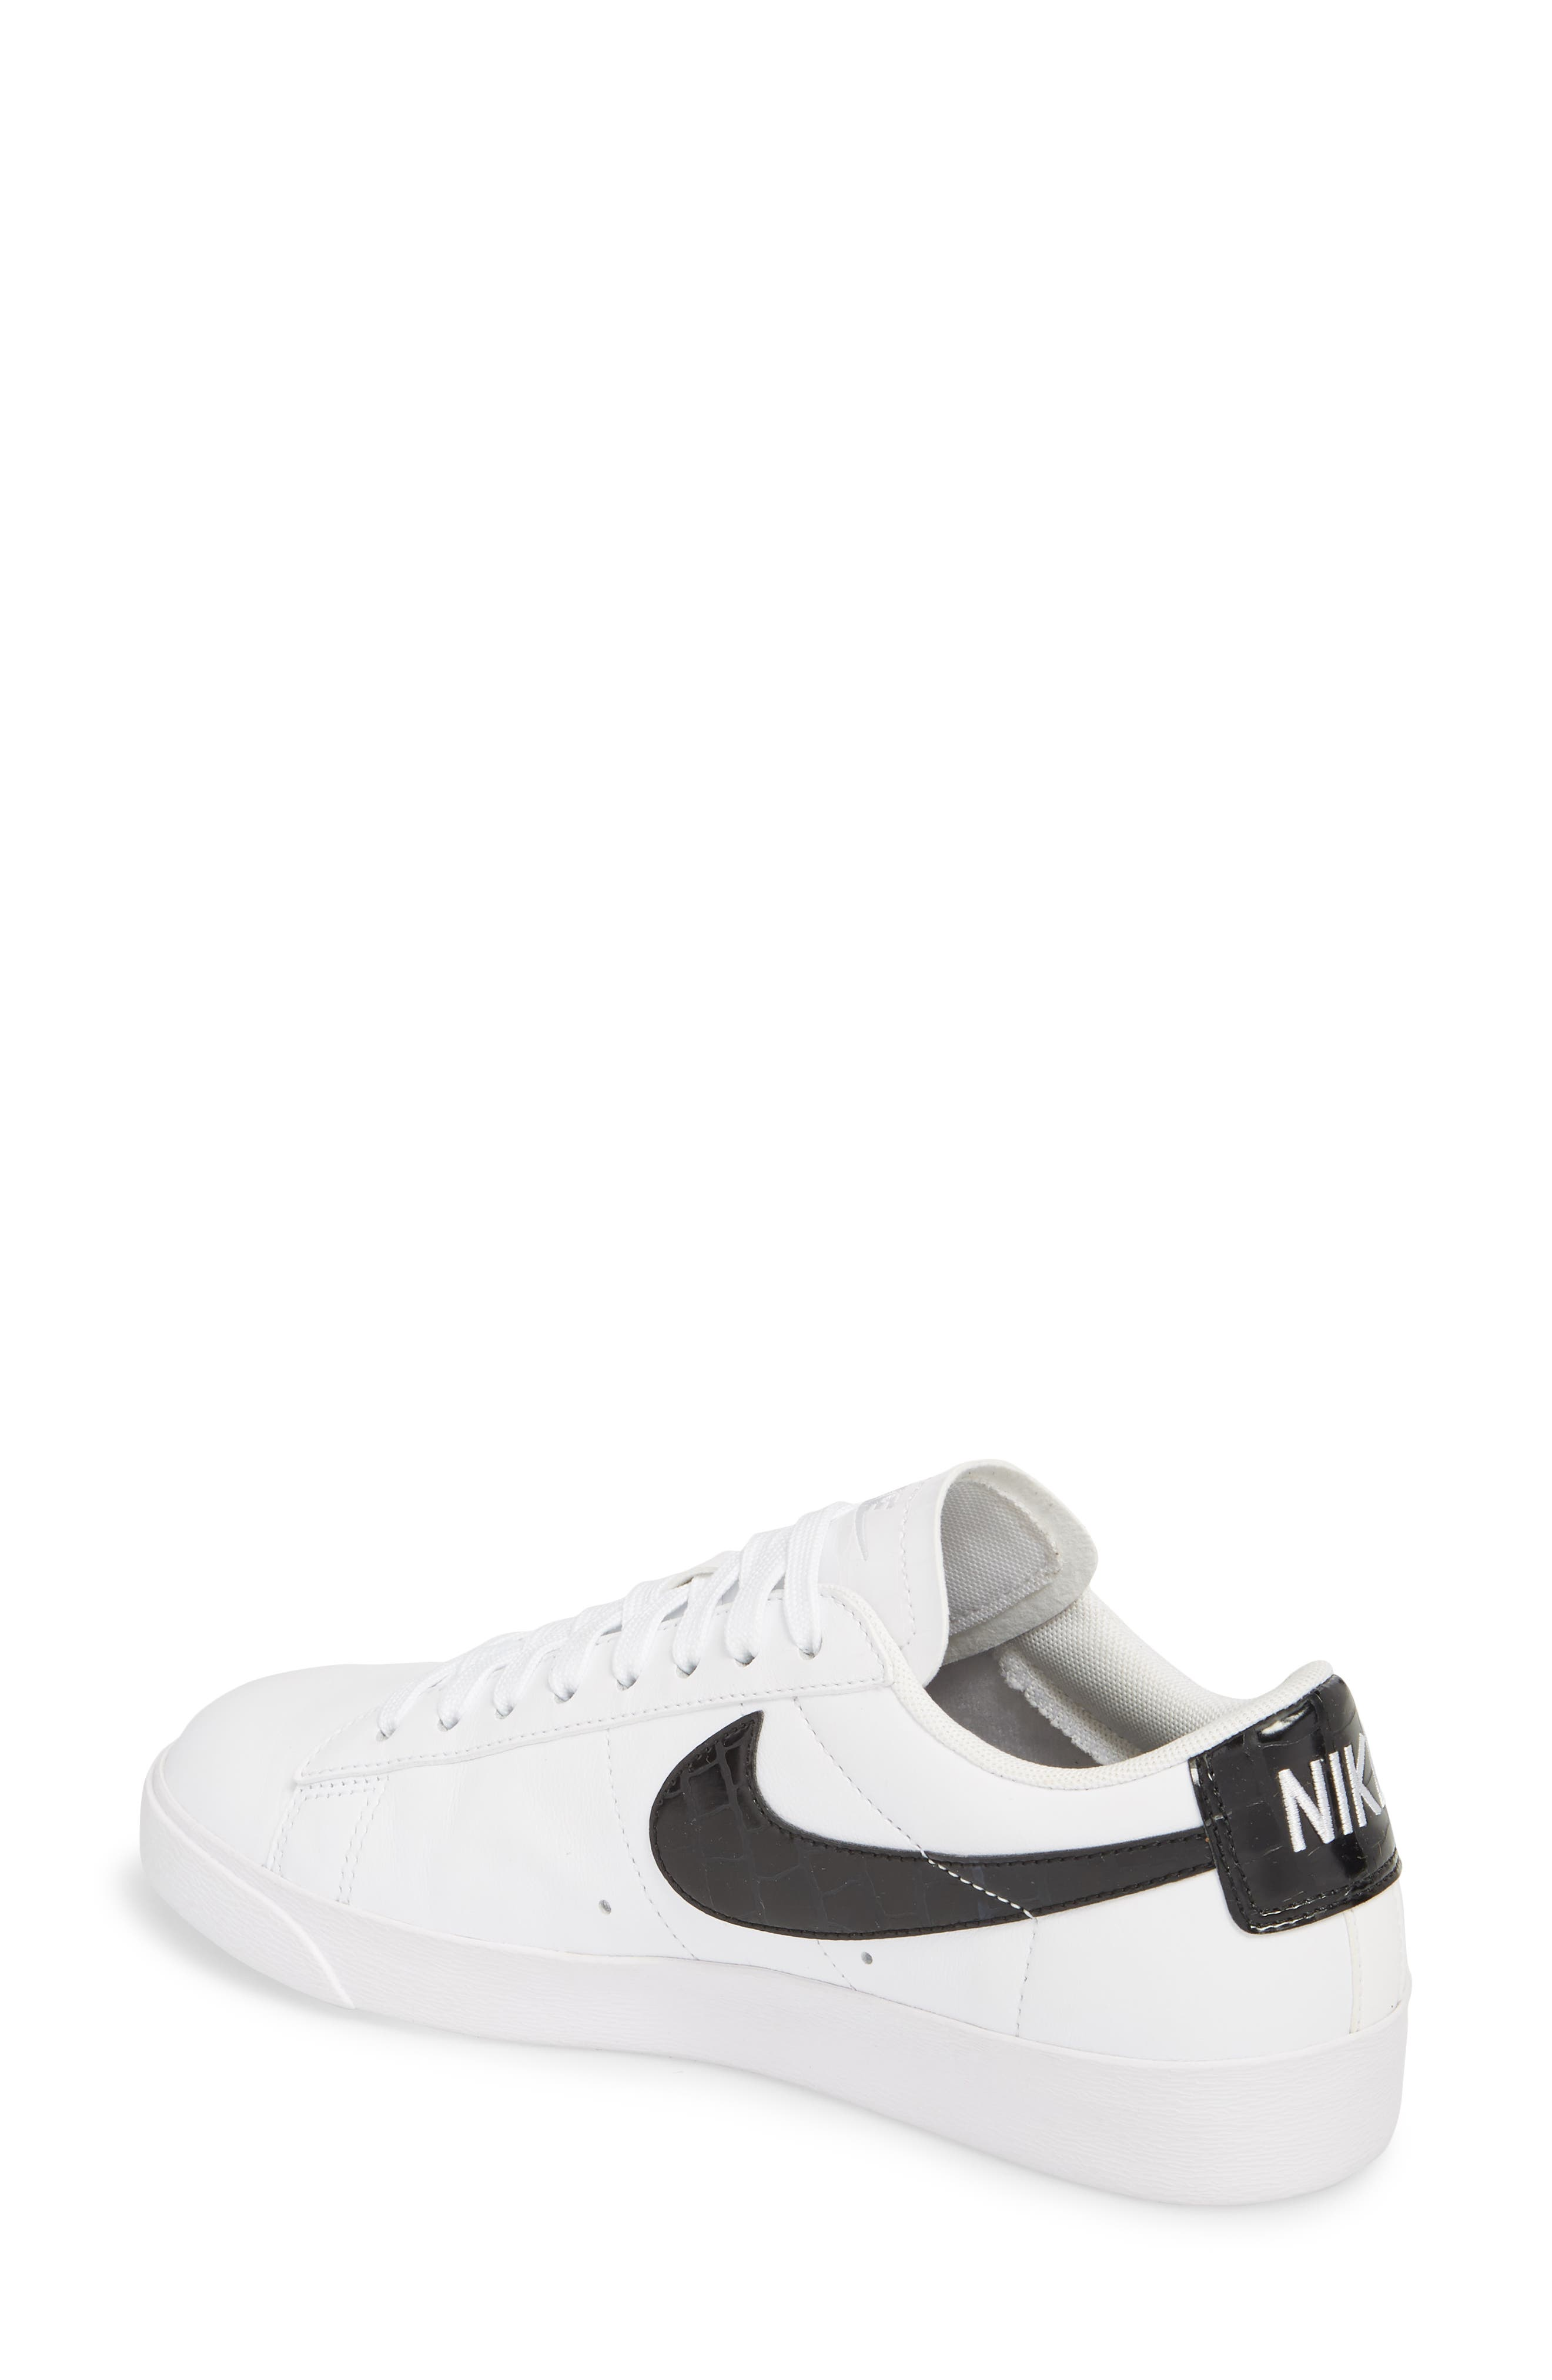 NIKE, Blazer Low Essential Sneaker, Alternate thumbnail 2, color, 100